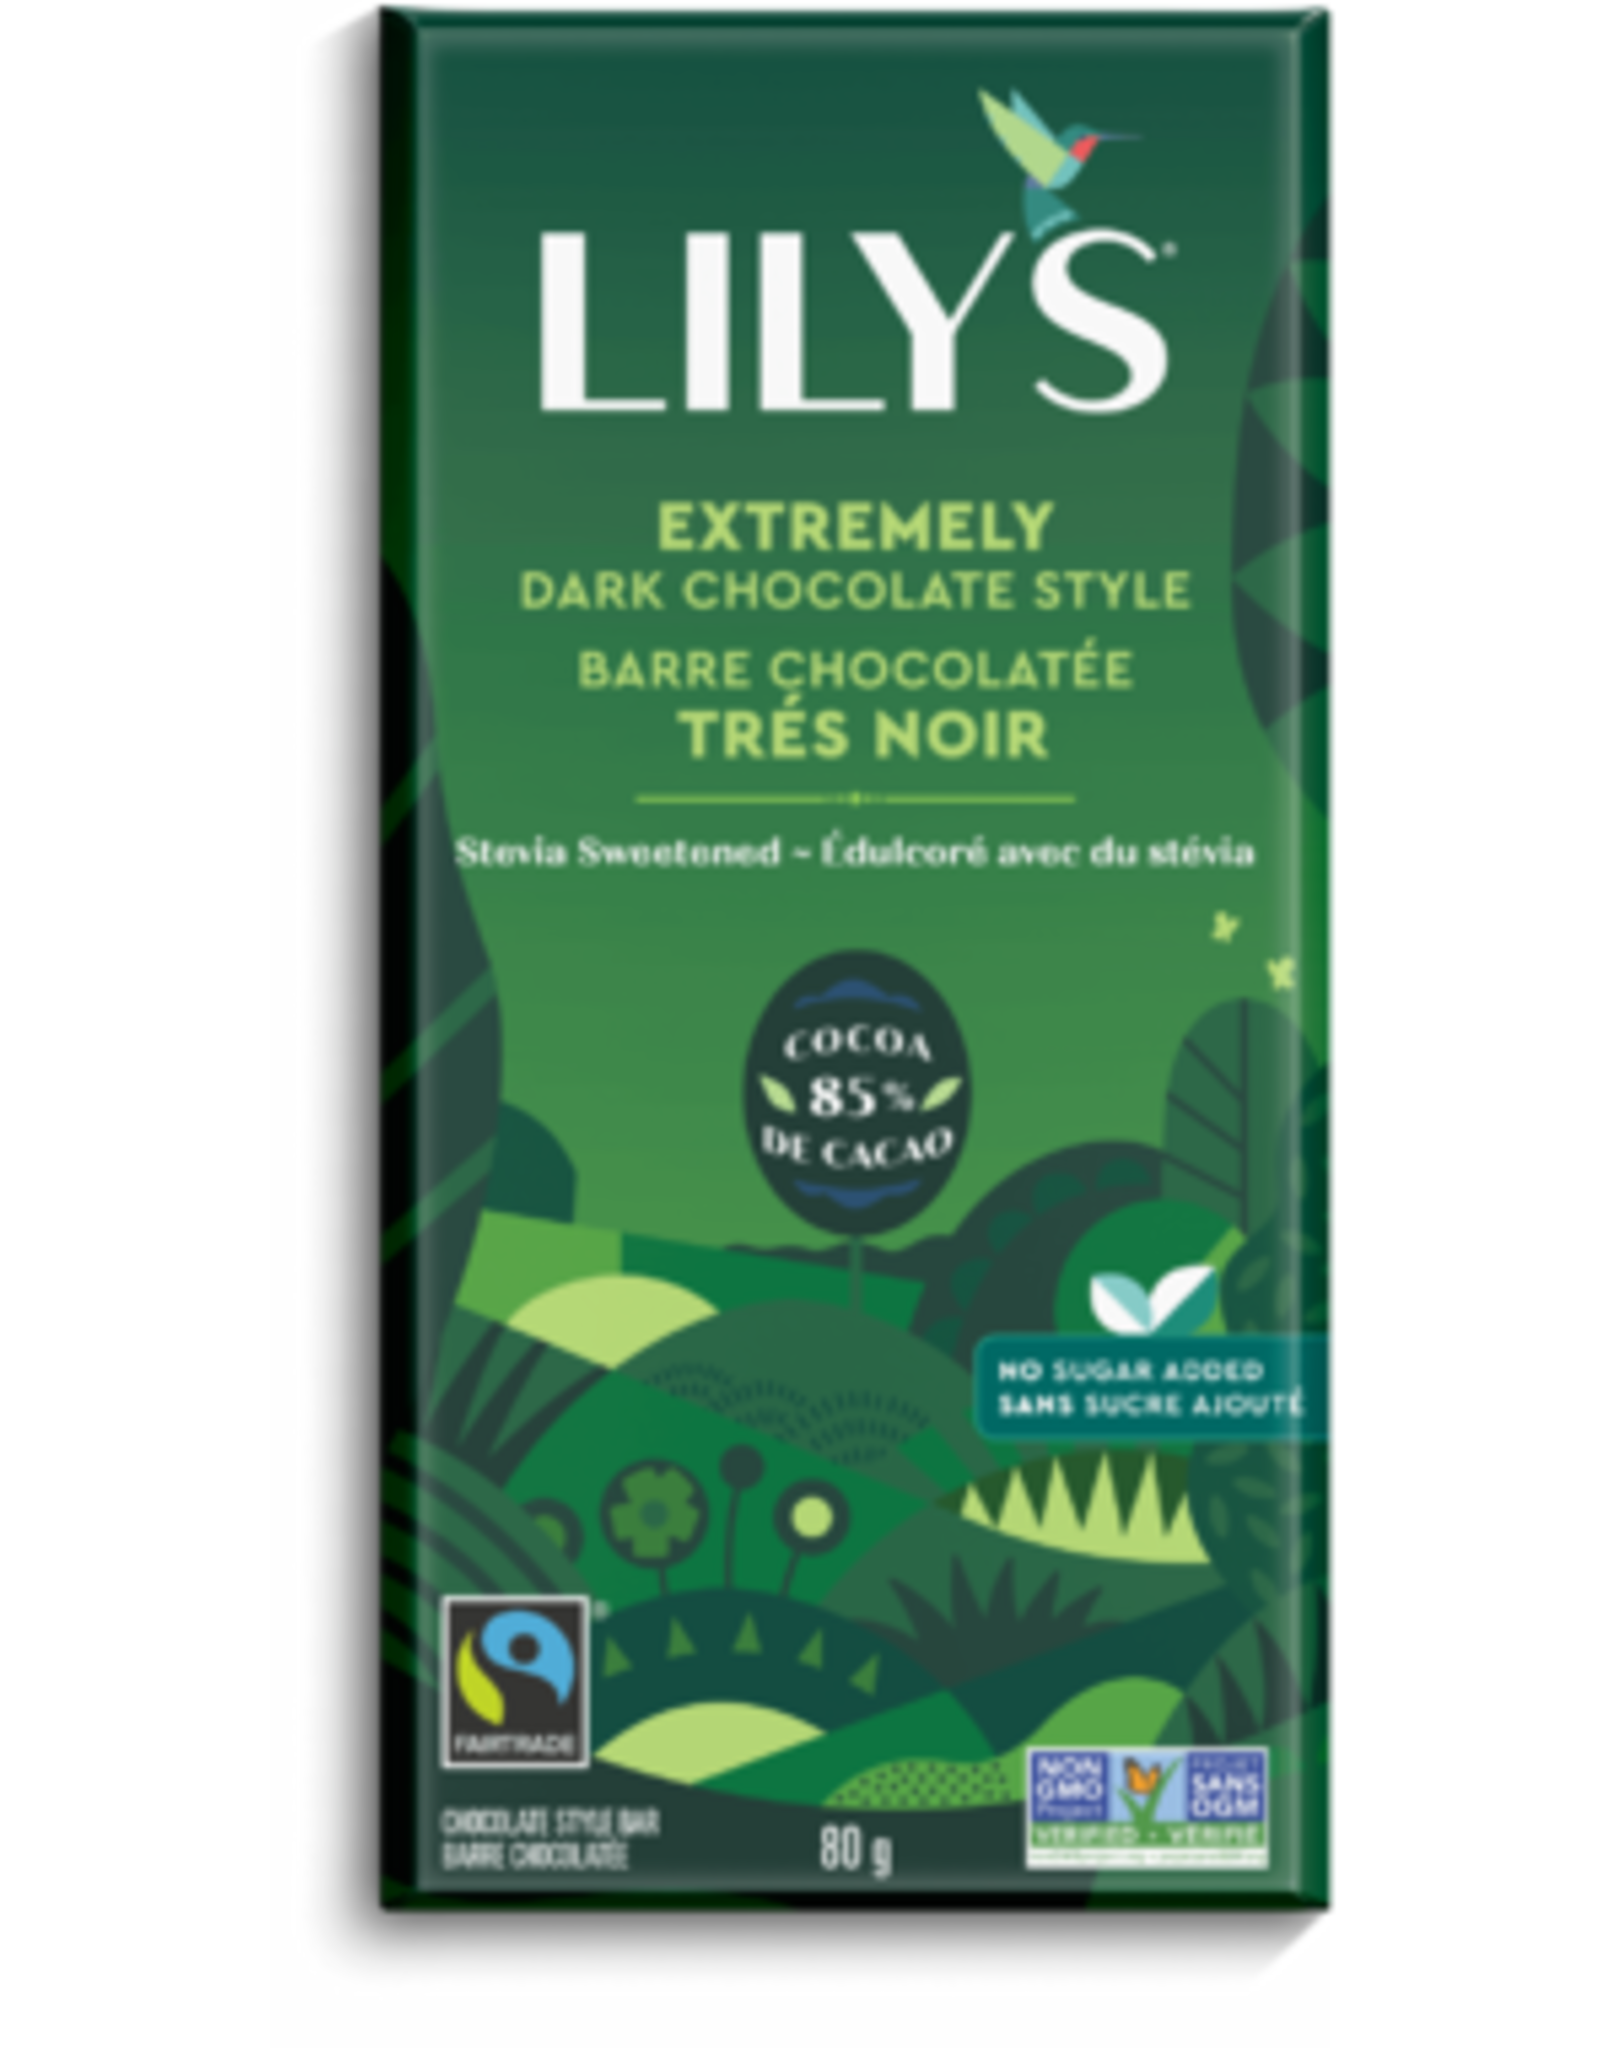 Lily's Sweets, 85% Extremely Dark Chocolate